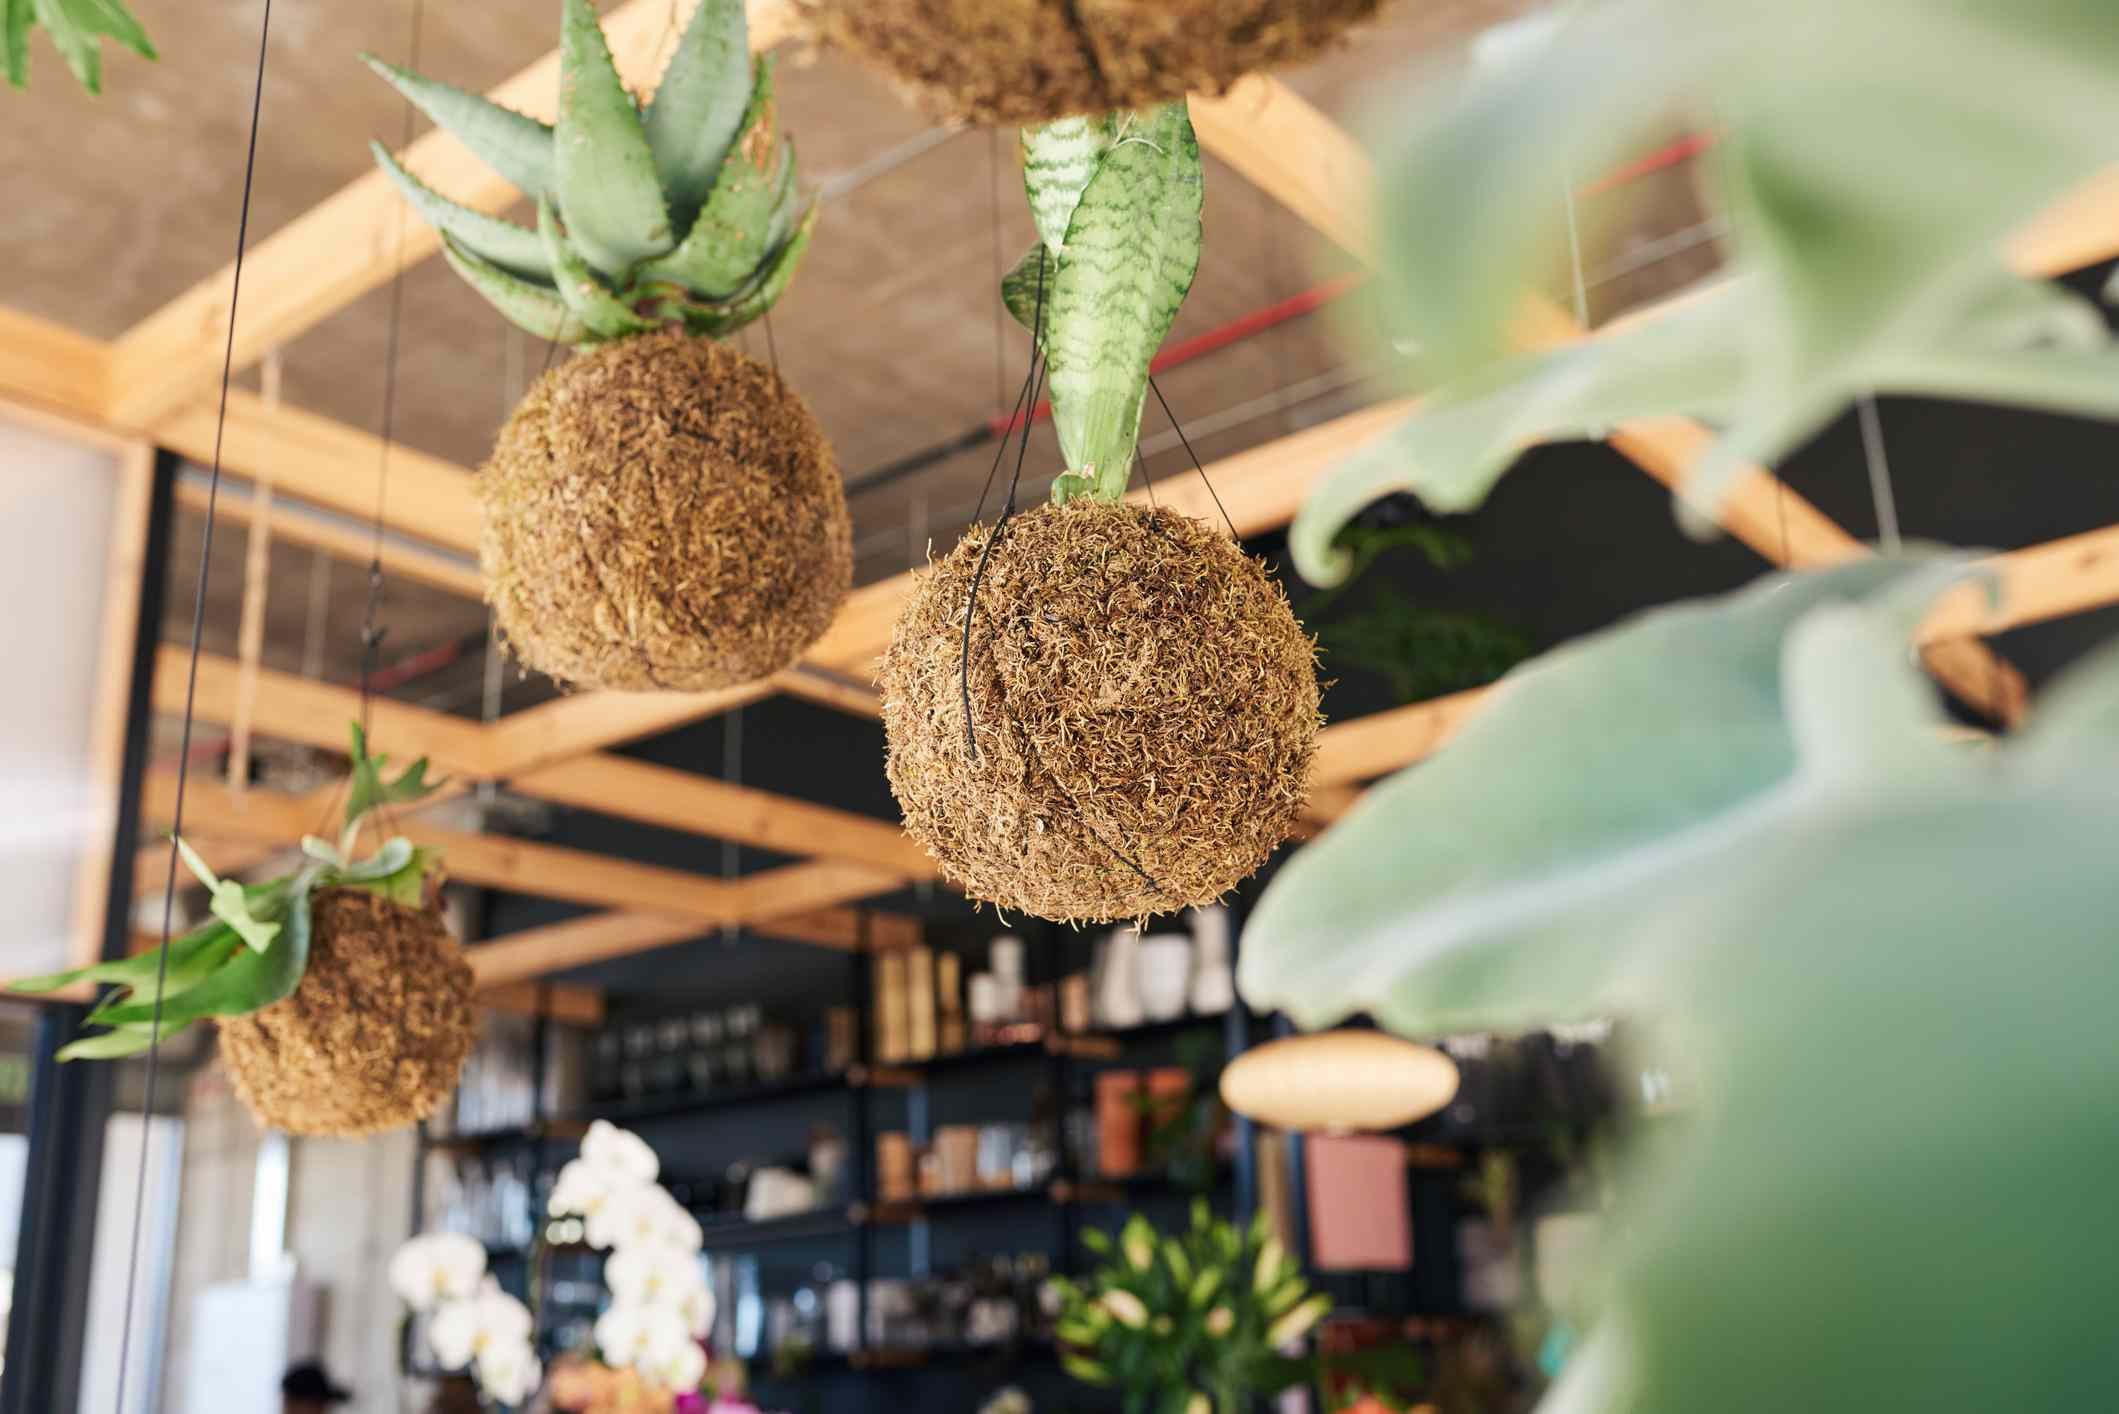 Kokedama moss balls with plants hang from a flower shop ceiling.